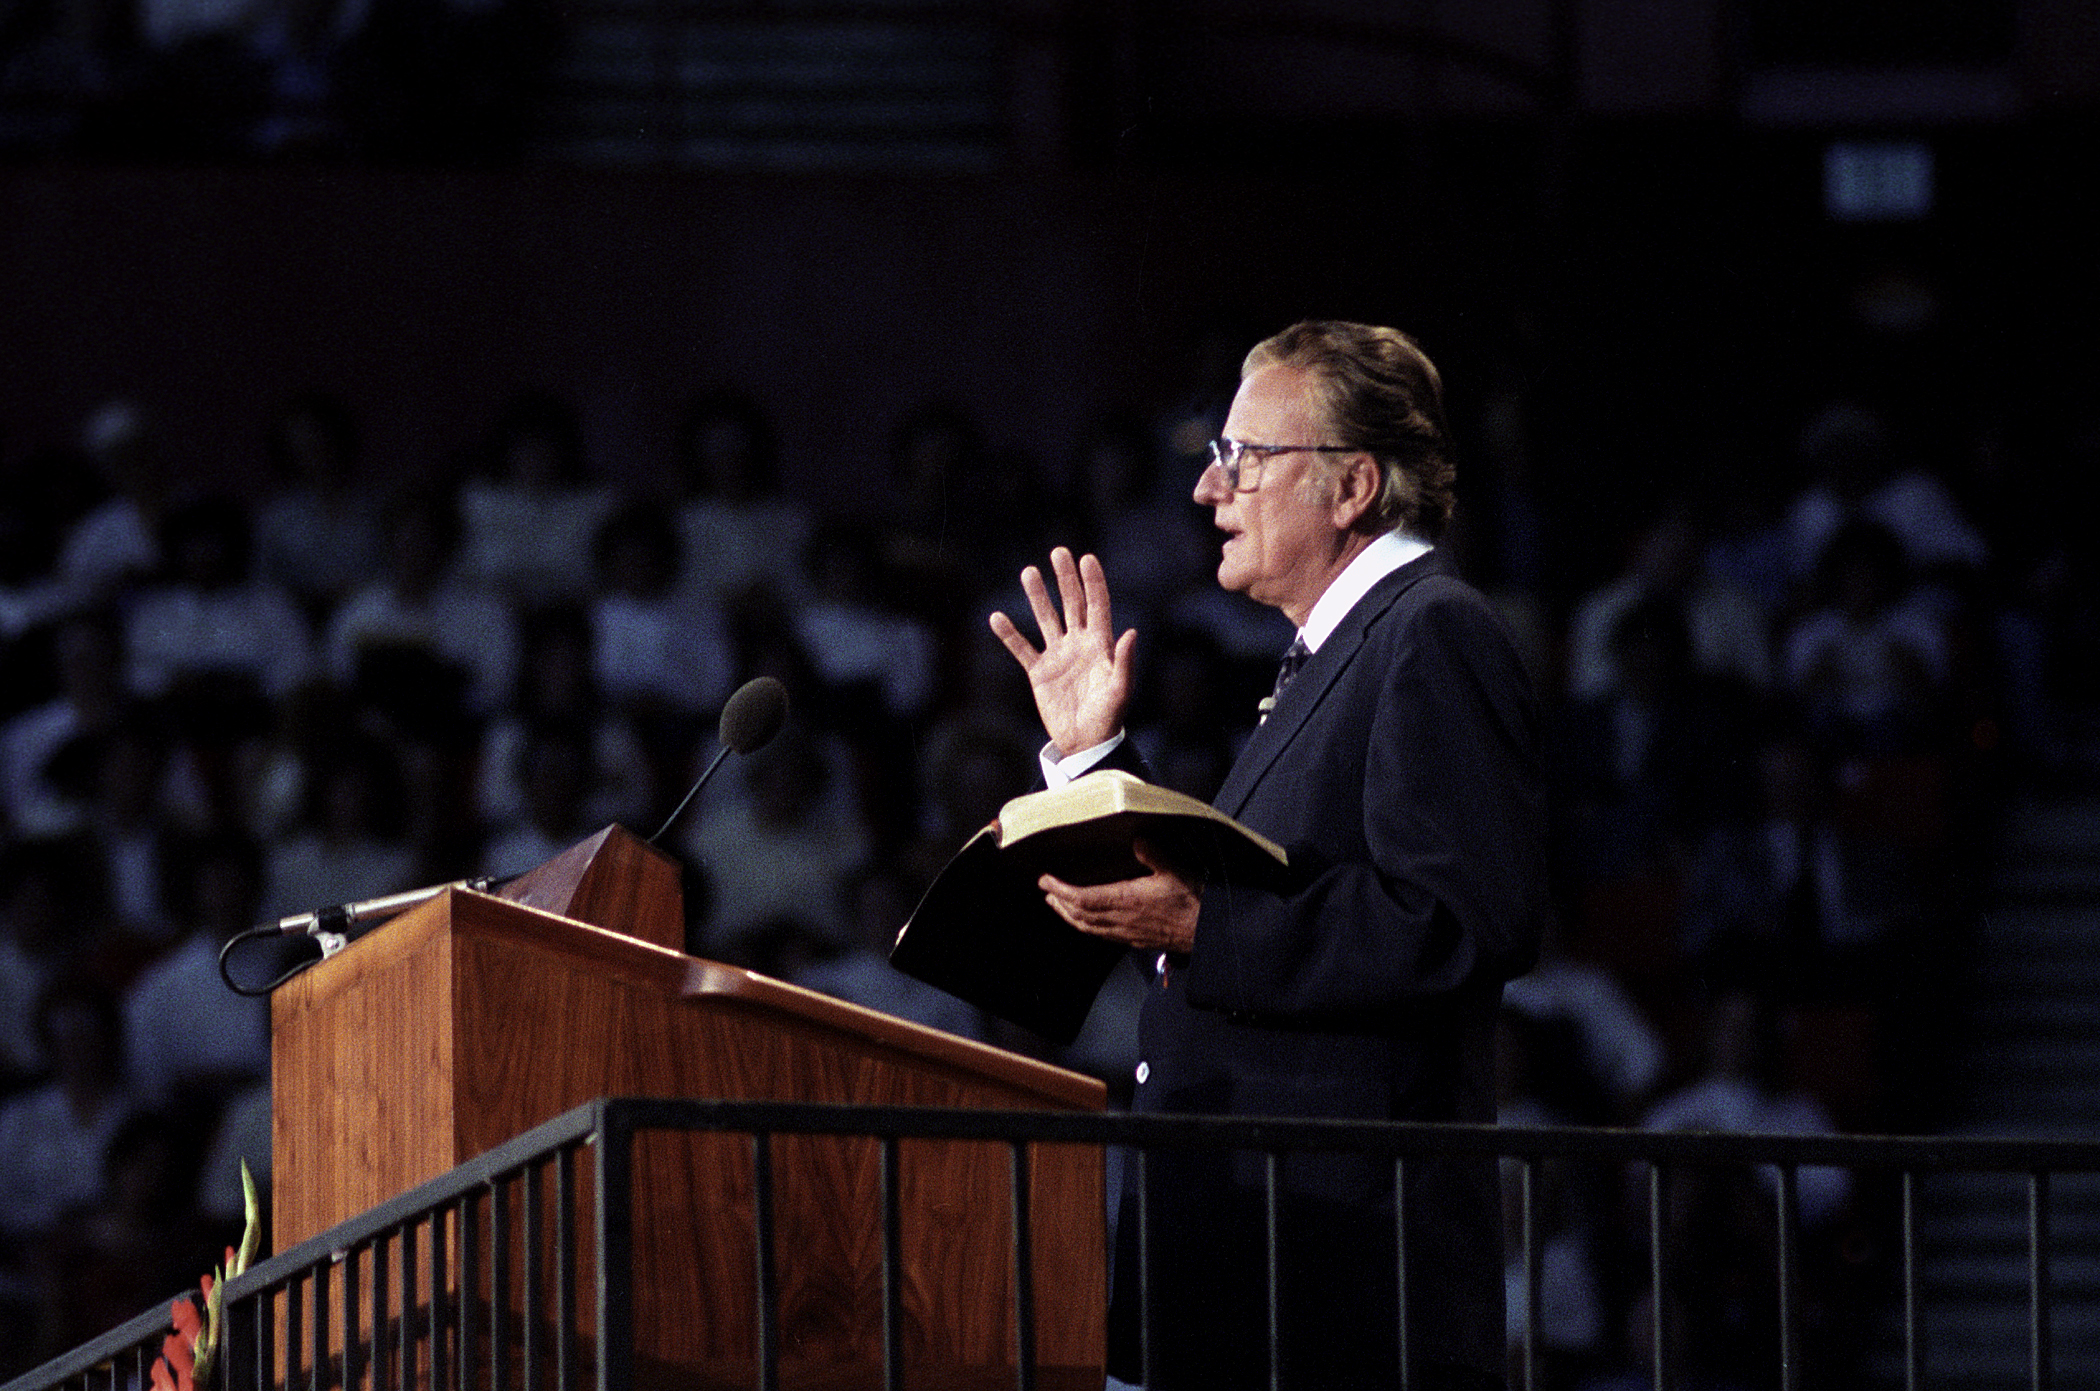 From 1956 To Now A Look At Billy Graham S Ministry In